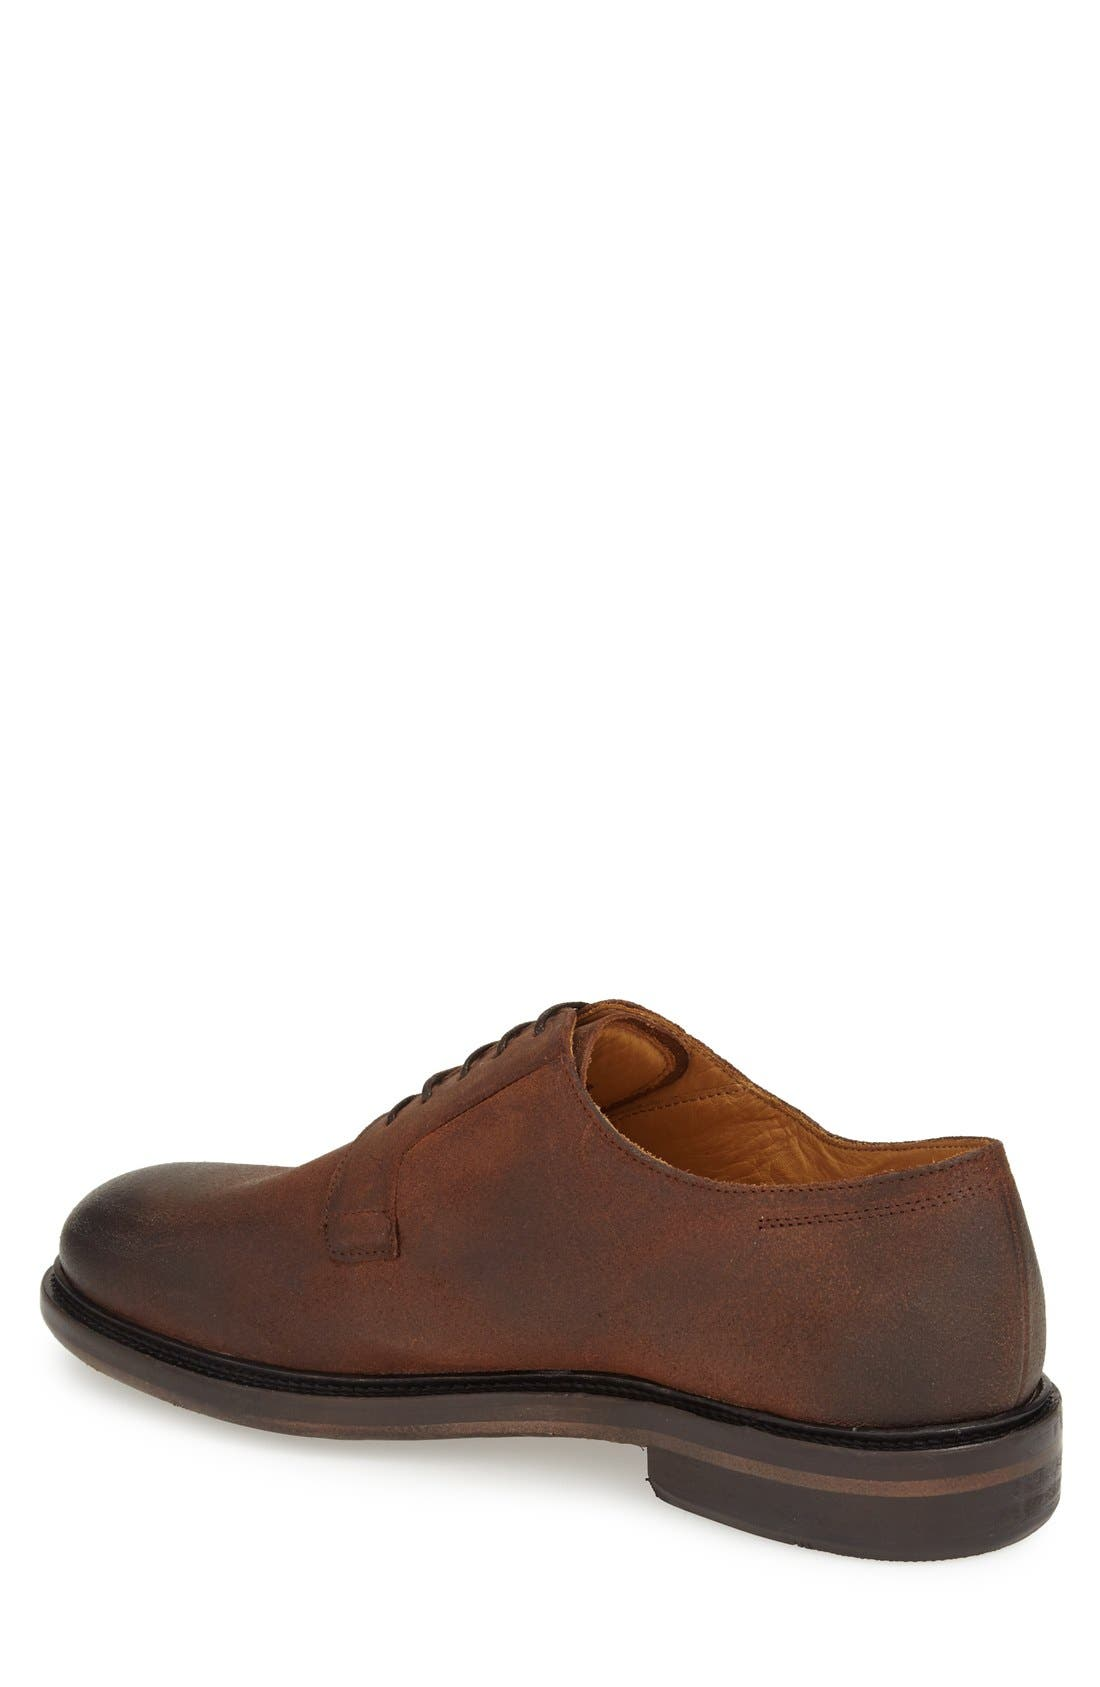 'Samtin' Plain Toe Blucher,                             Alternate thumbnail 4, color,